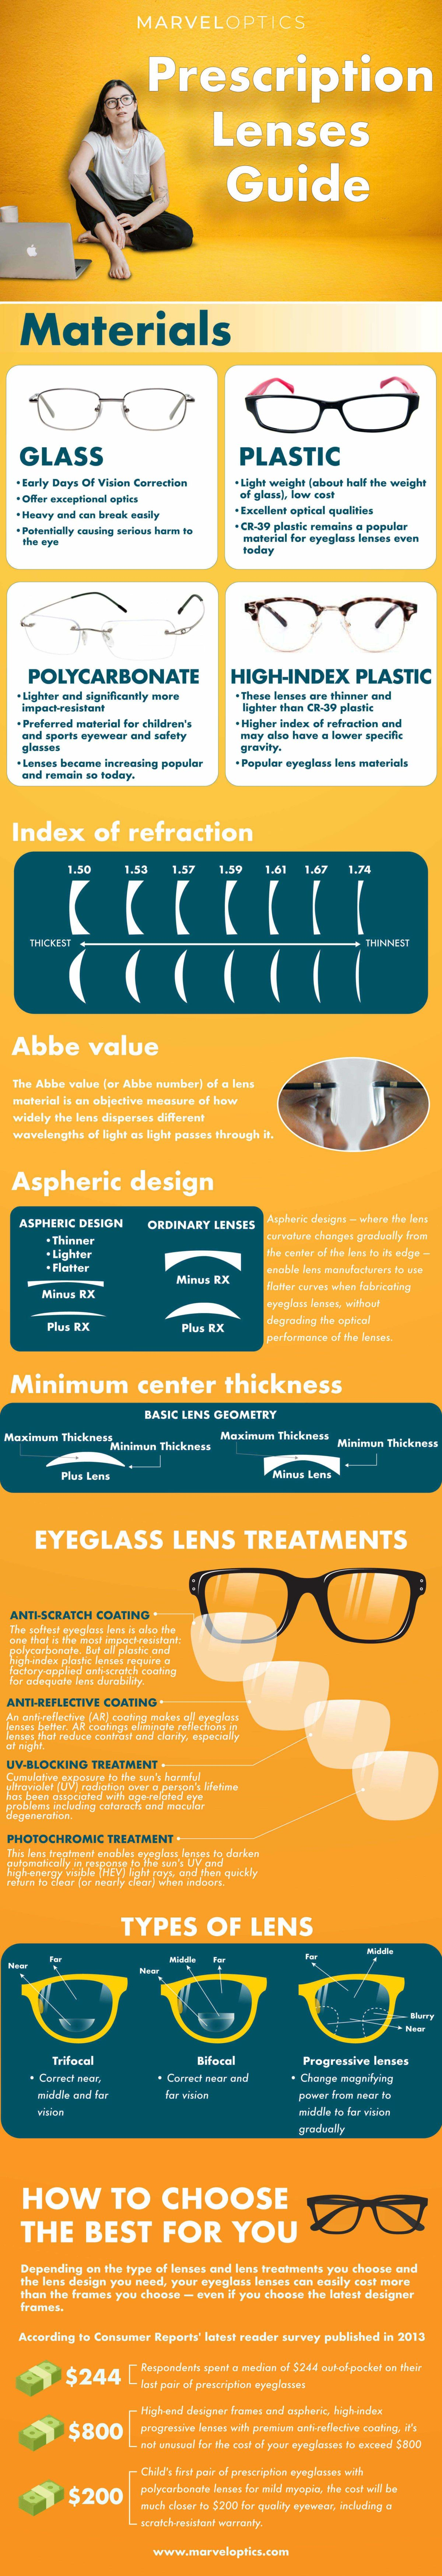 A Guide To Selecting the Best Prescription Lenses for Your Needs